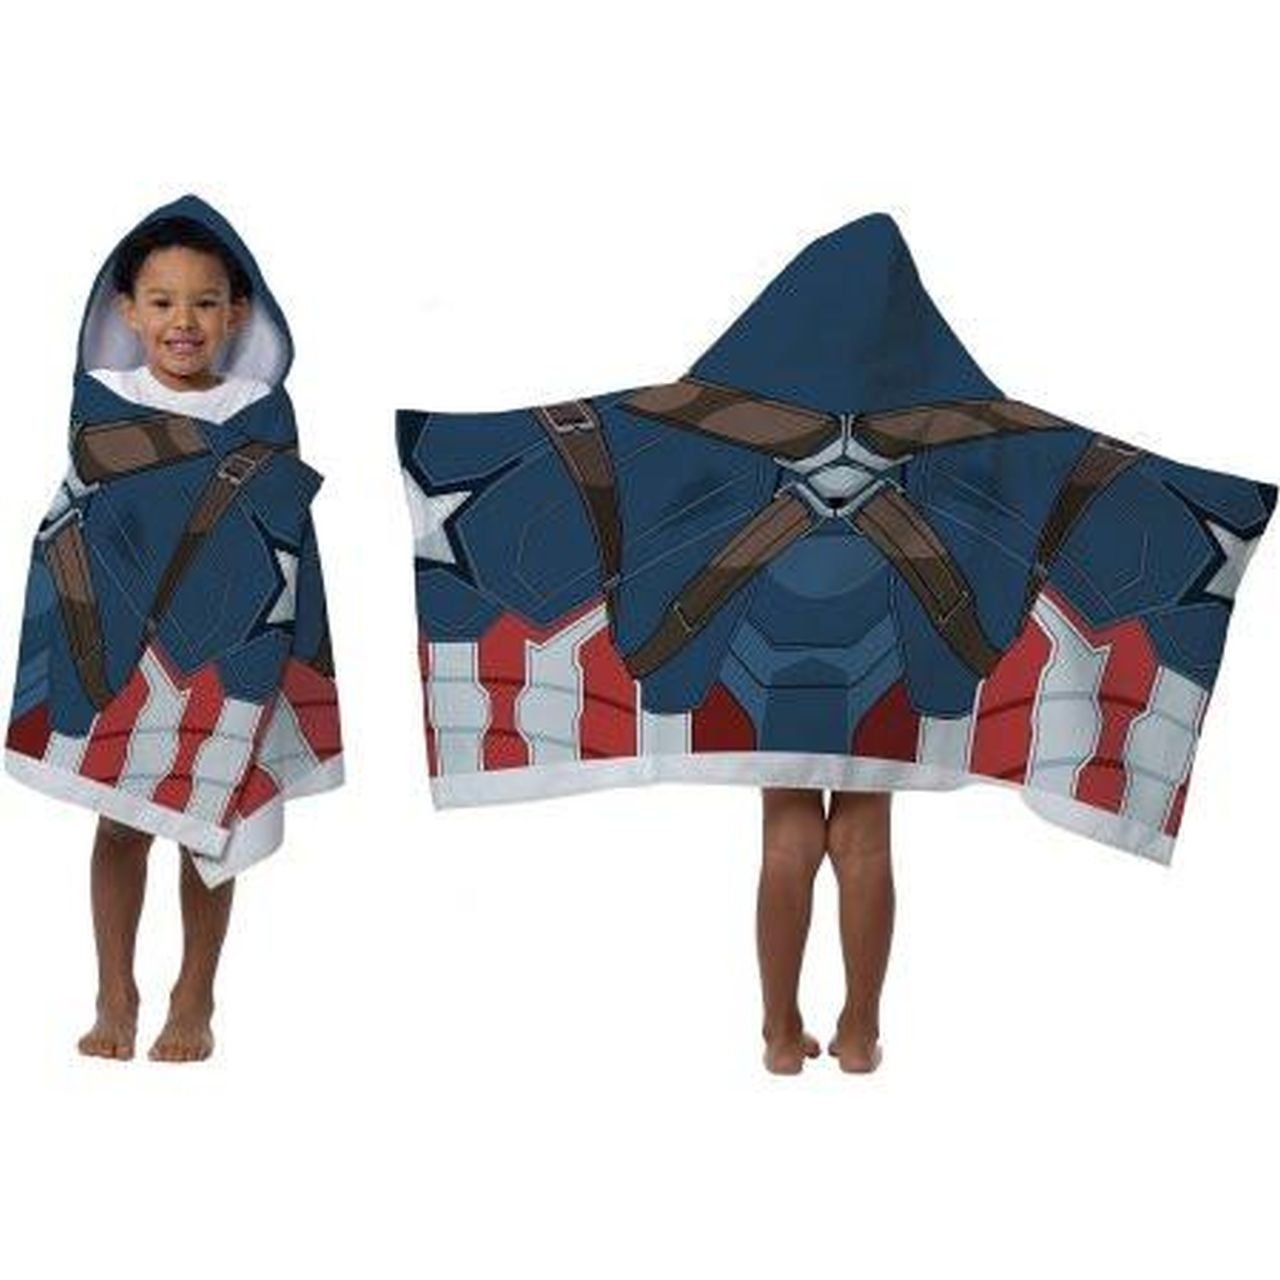 Marvel Captain America Civil War Hooded Towel For Bath, Pool, or Beach